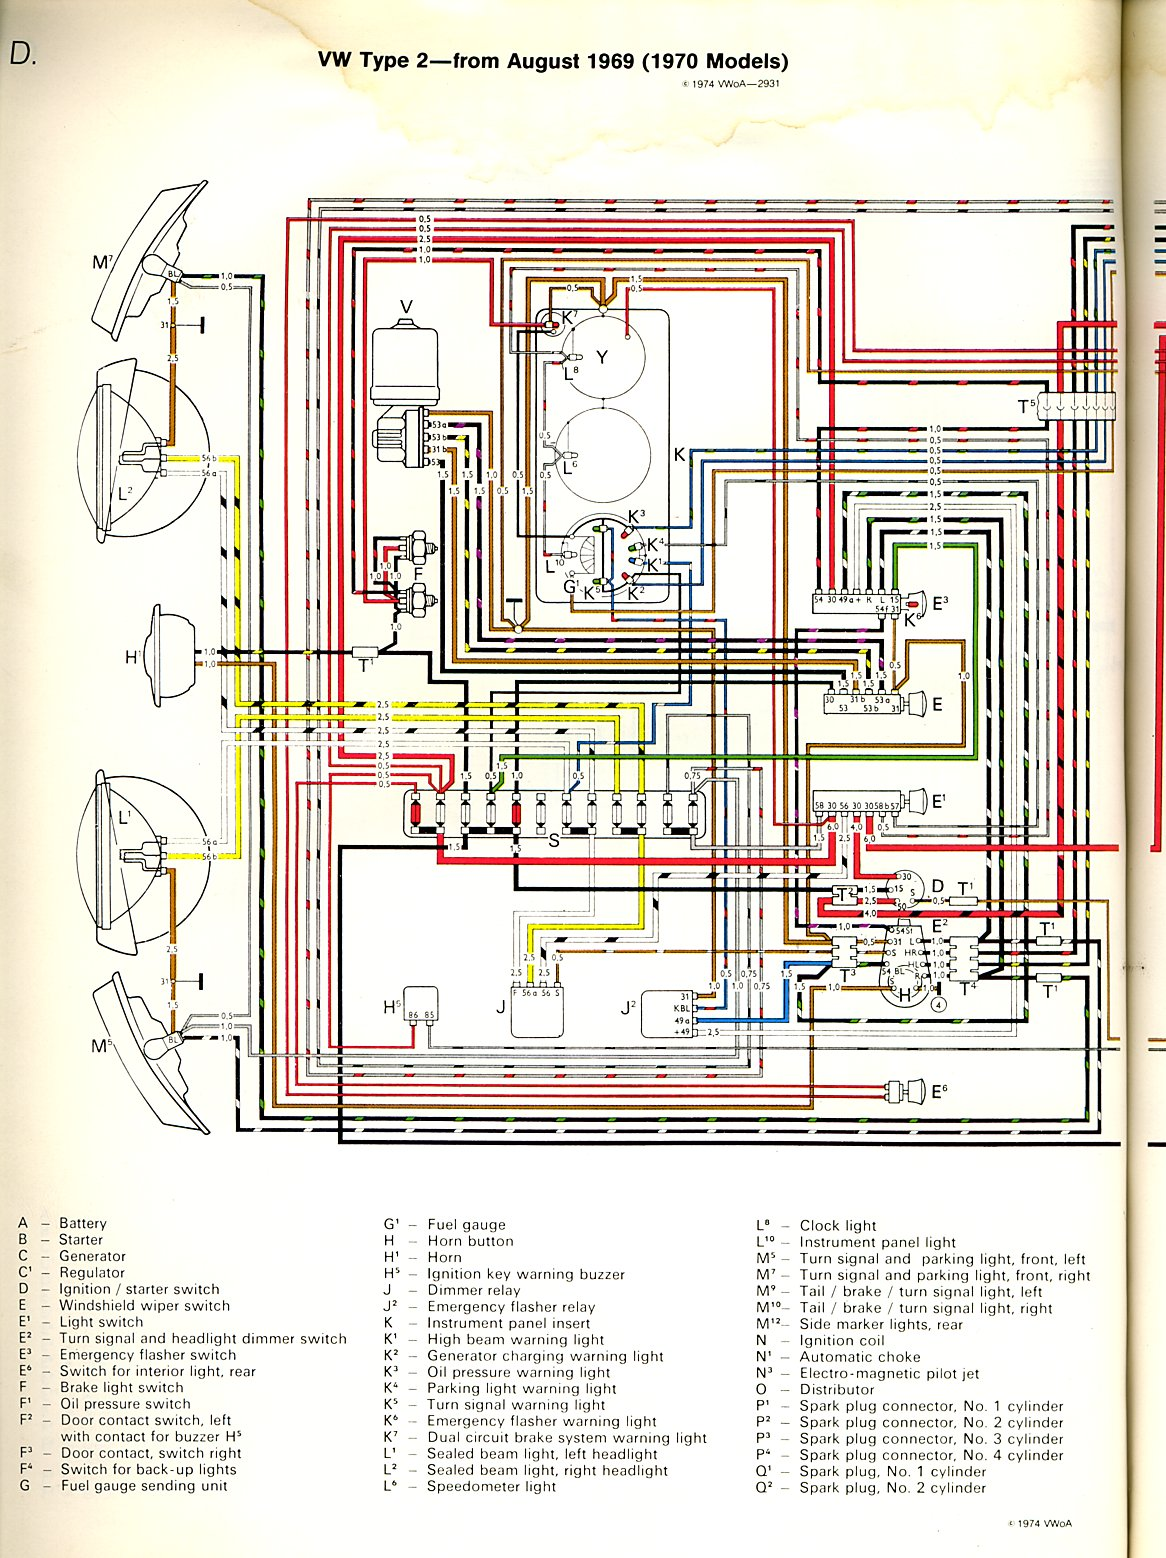 thesamba com type 2 wiring diagrams rh thesamba com 1976 VW Van Girl in VW Van